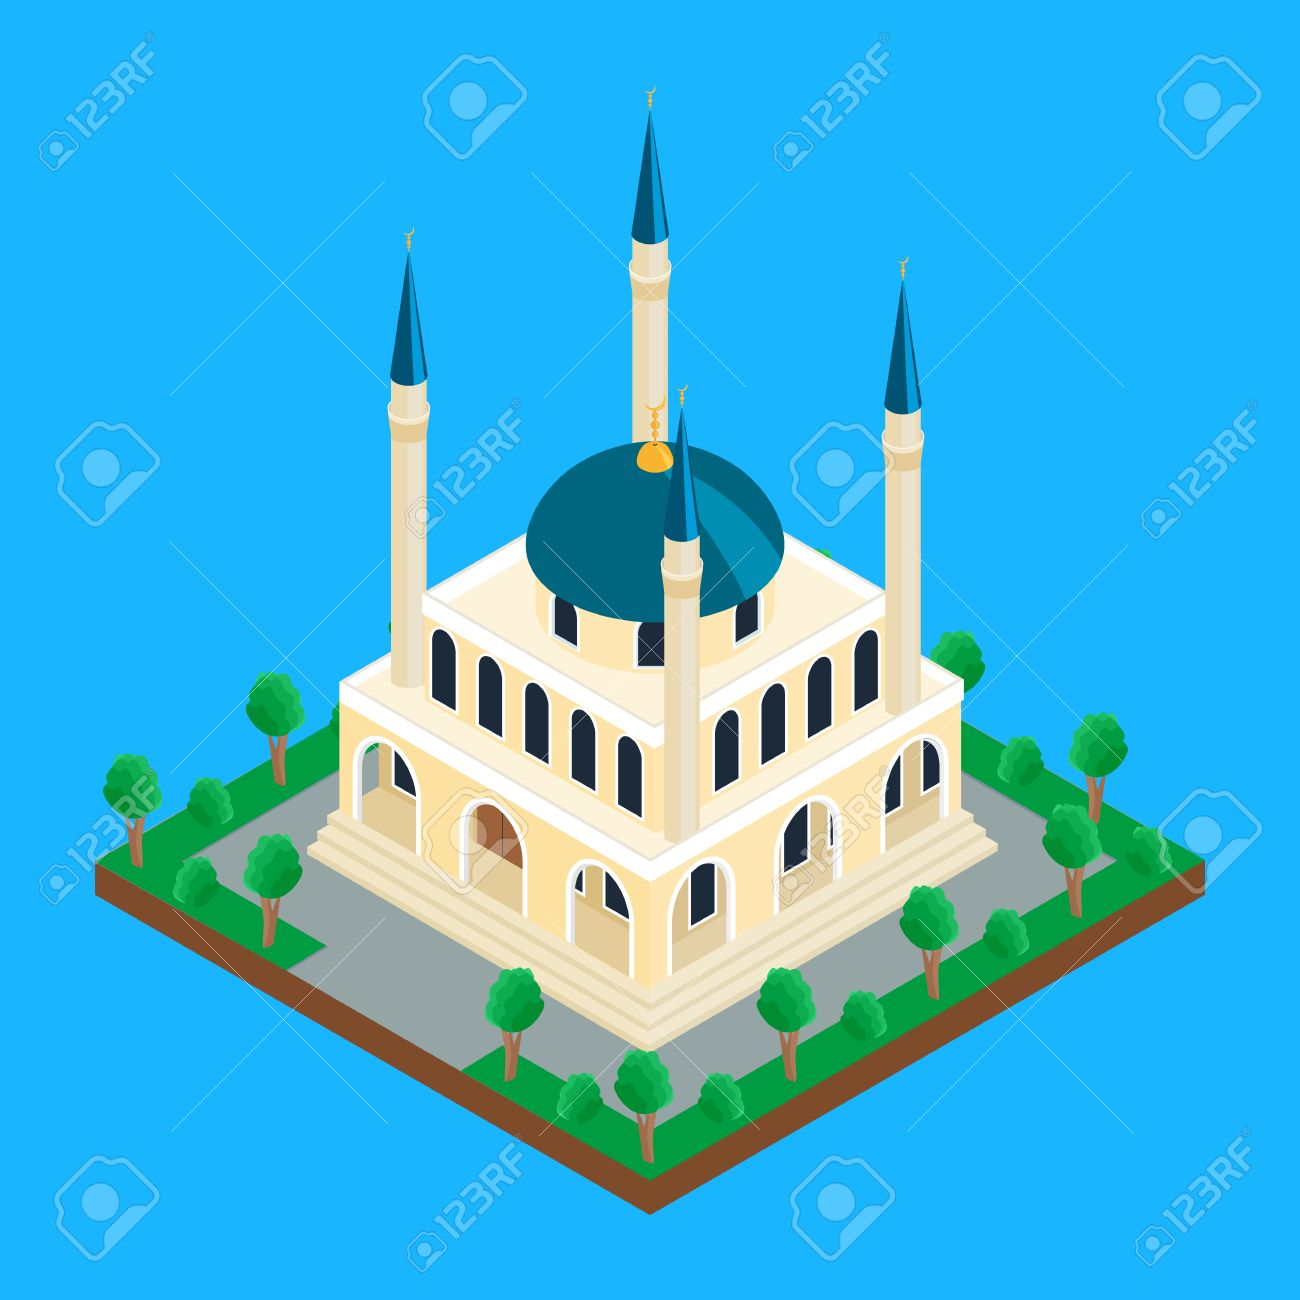 illustration  Islamic mosque with minaret towers  isometric,